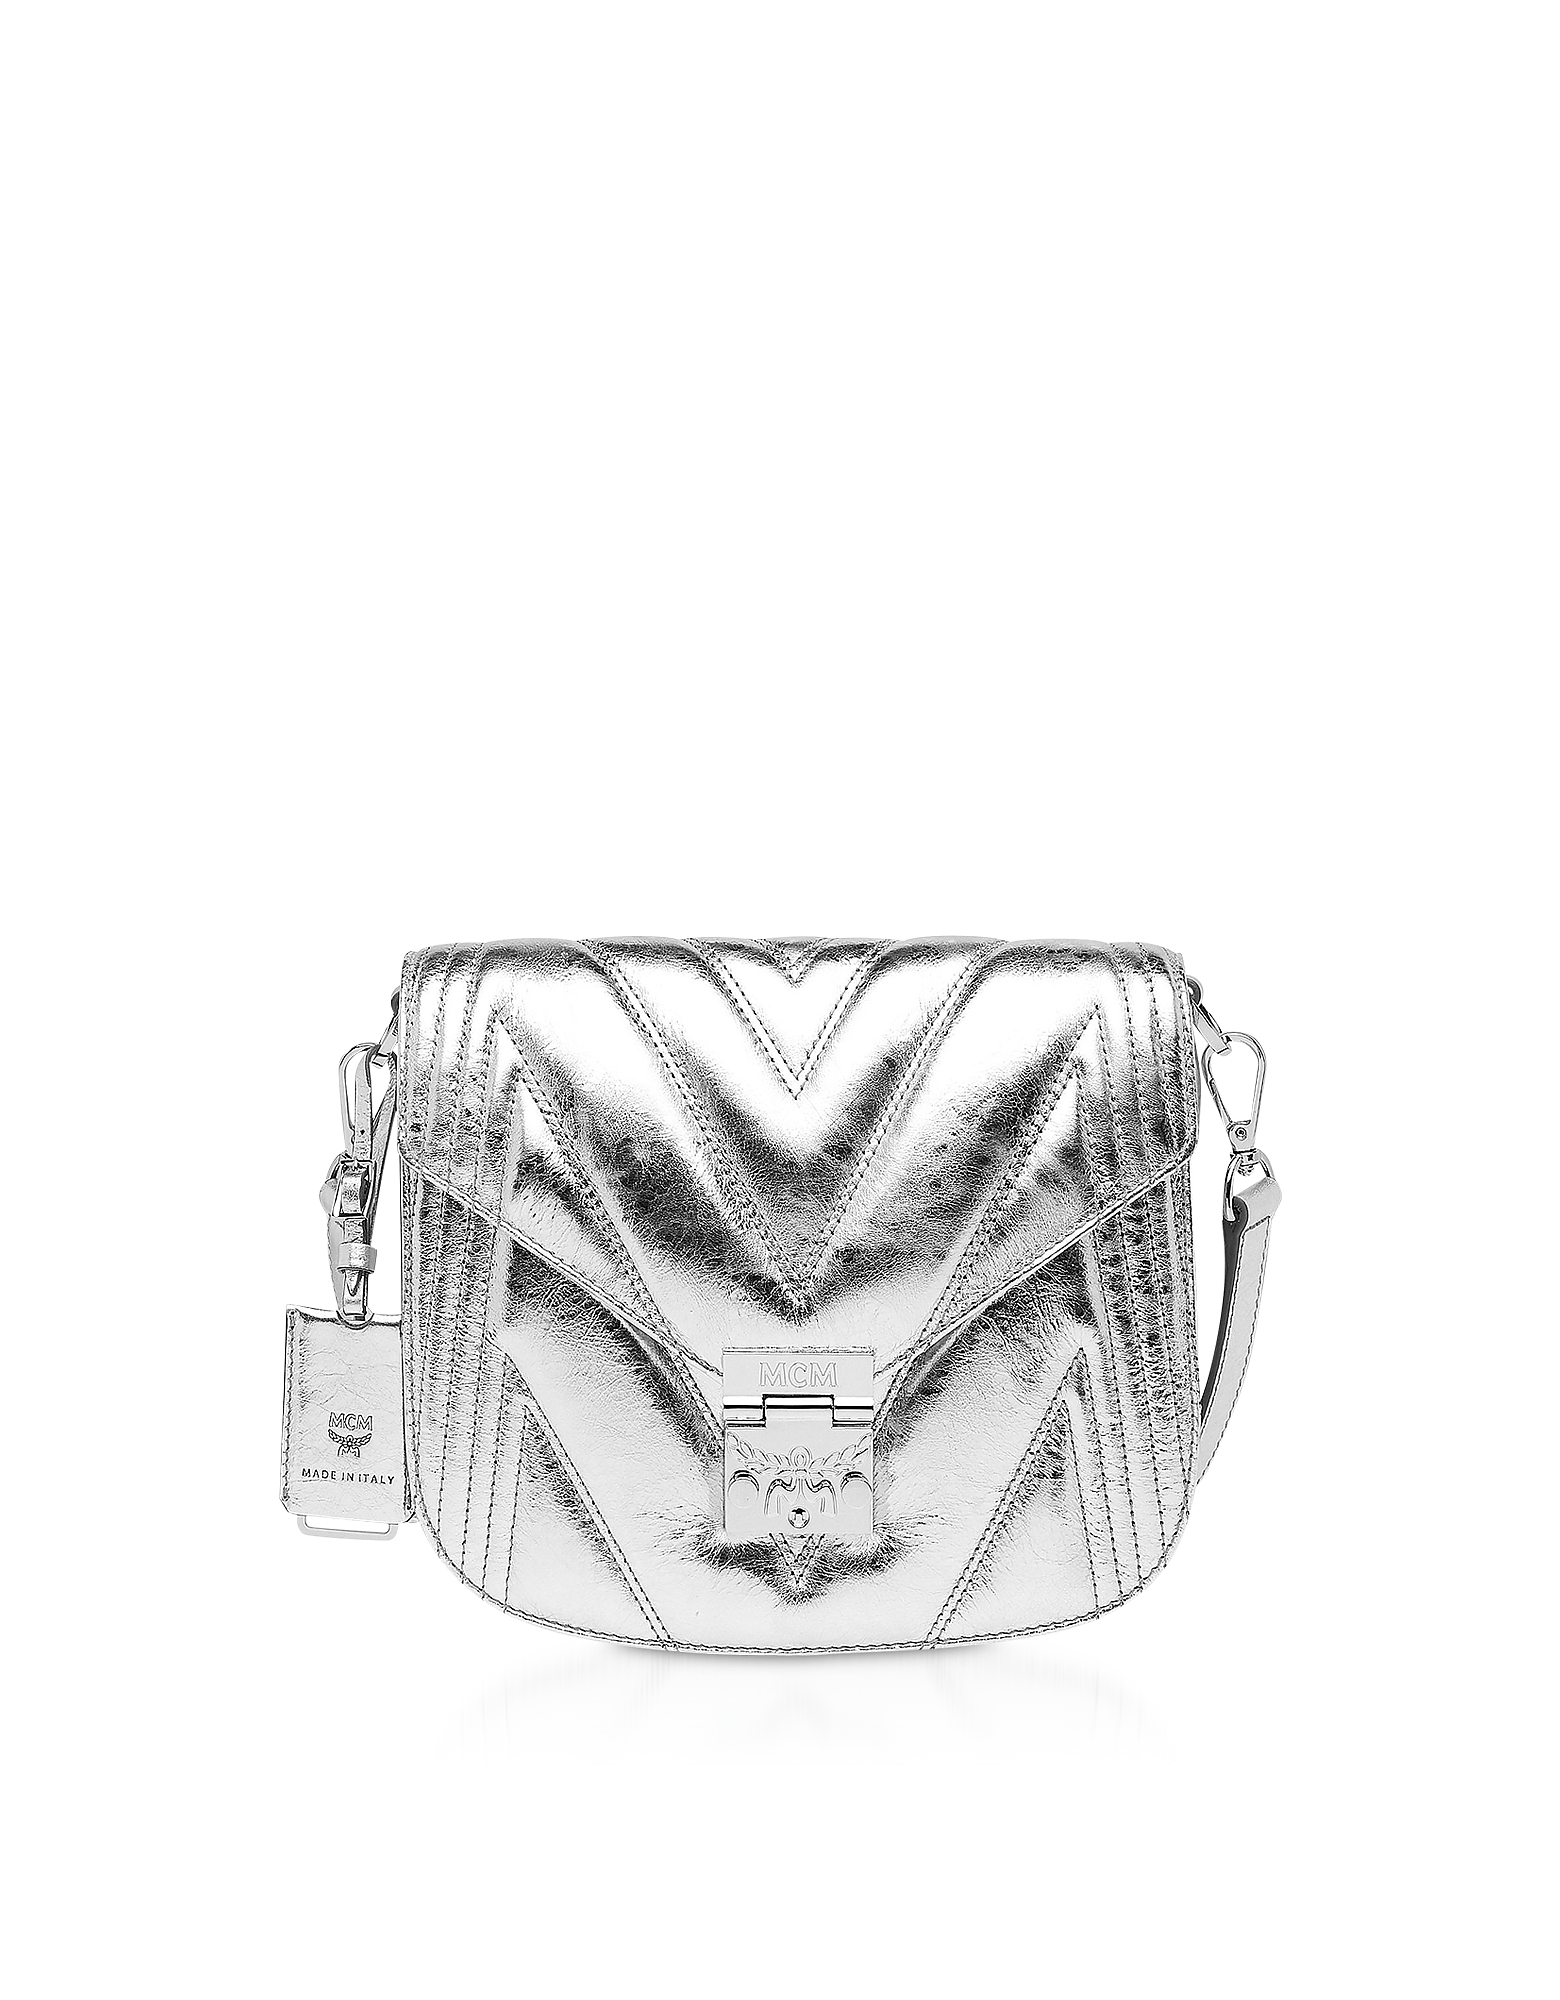 Quilted Metallic Leather Patricia Shoulder Bag